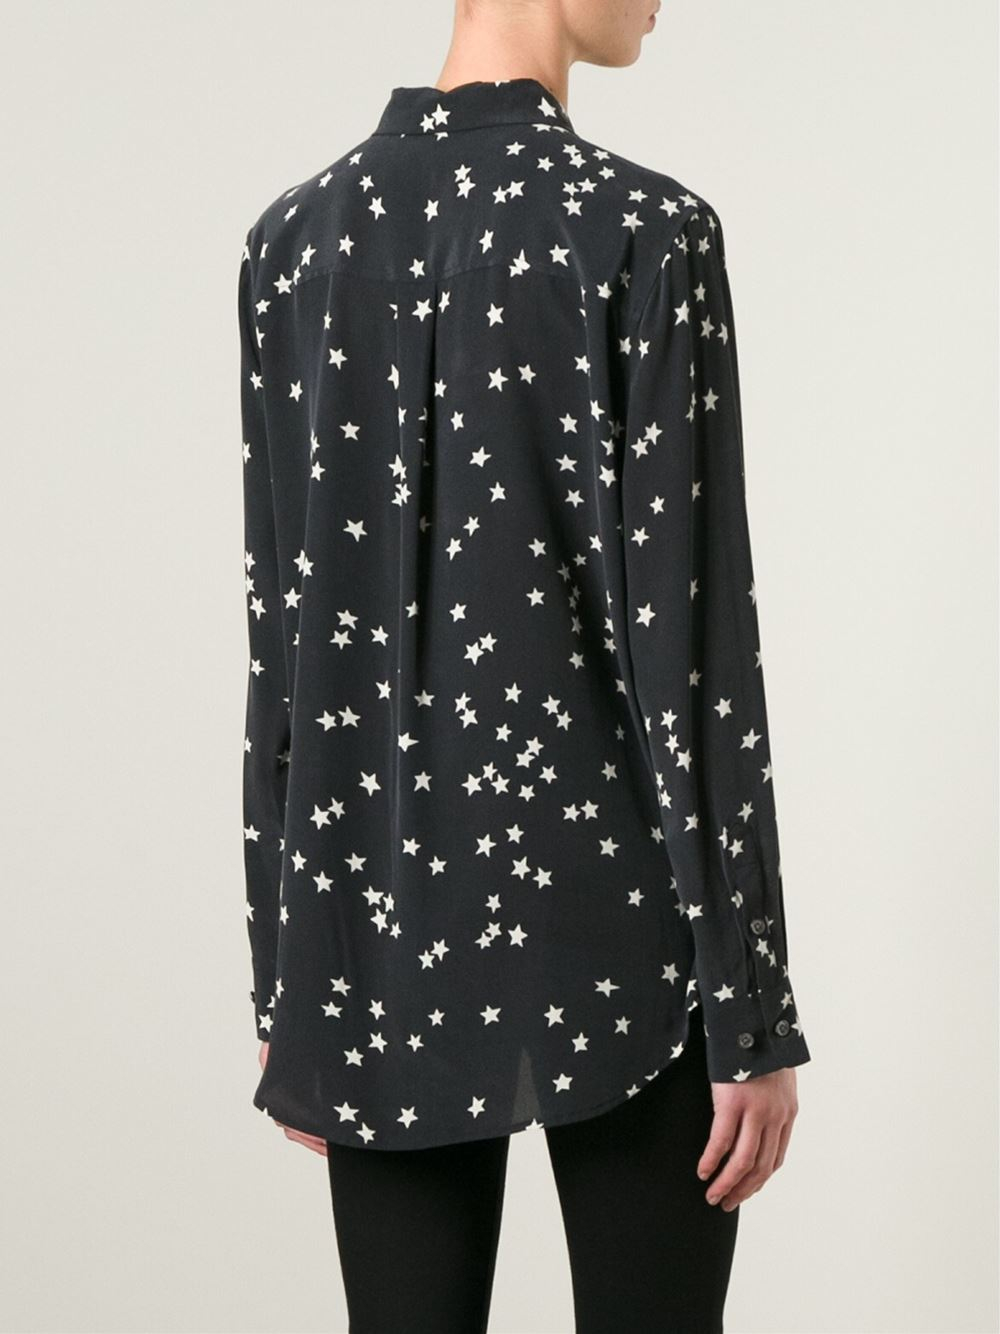 cb30b79999c8 Lyst - Equipment Star Print Shirt in Black